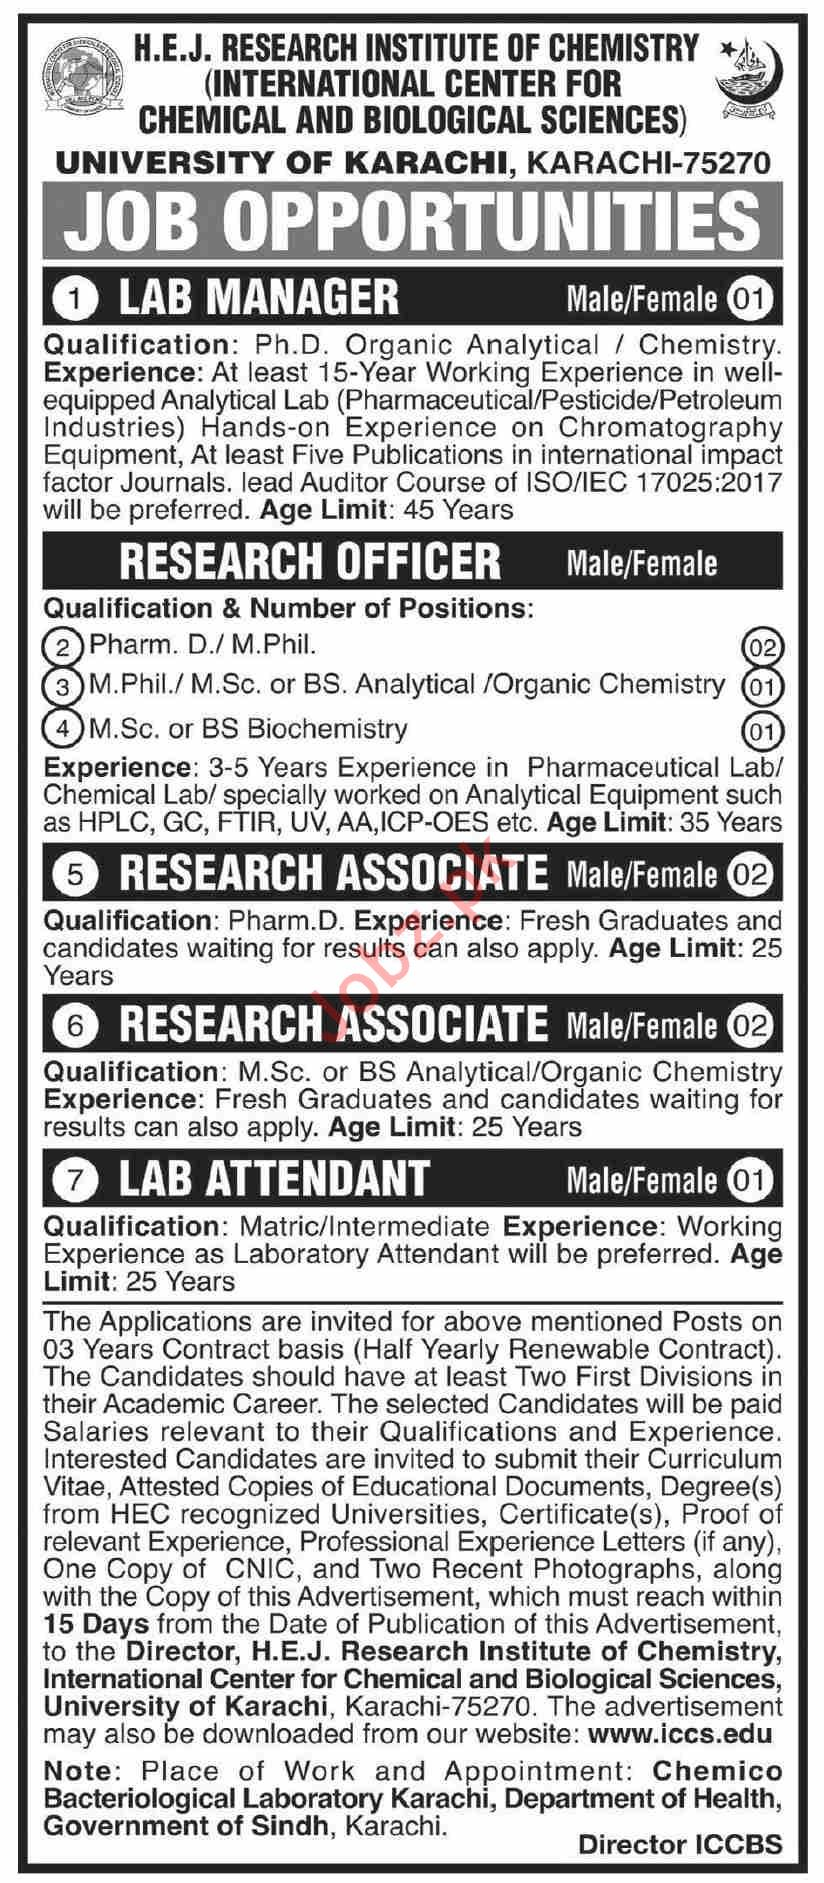 HEJ Research Institute of Chemistry Karachi Jobs 2020